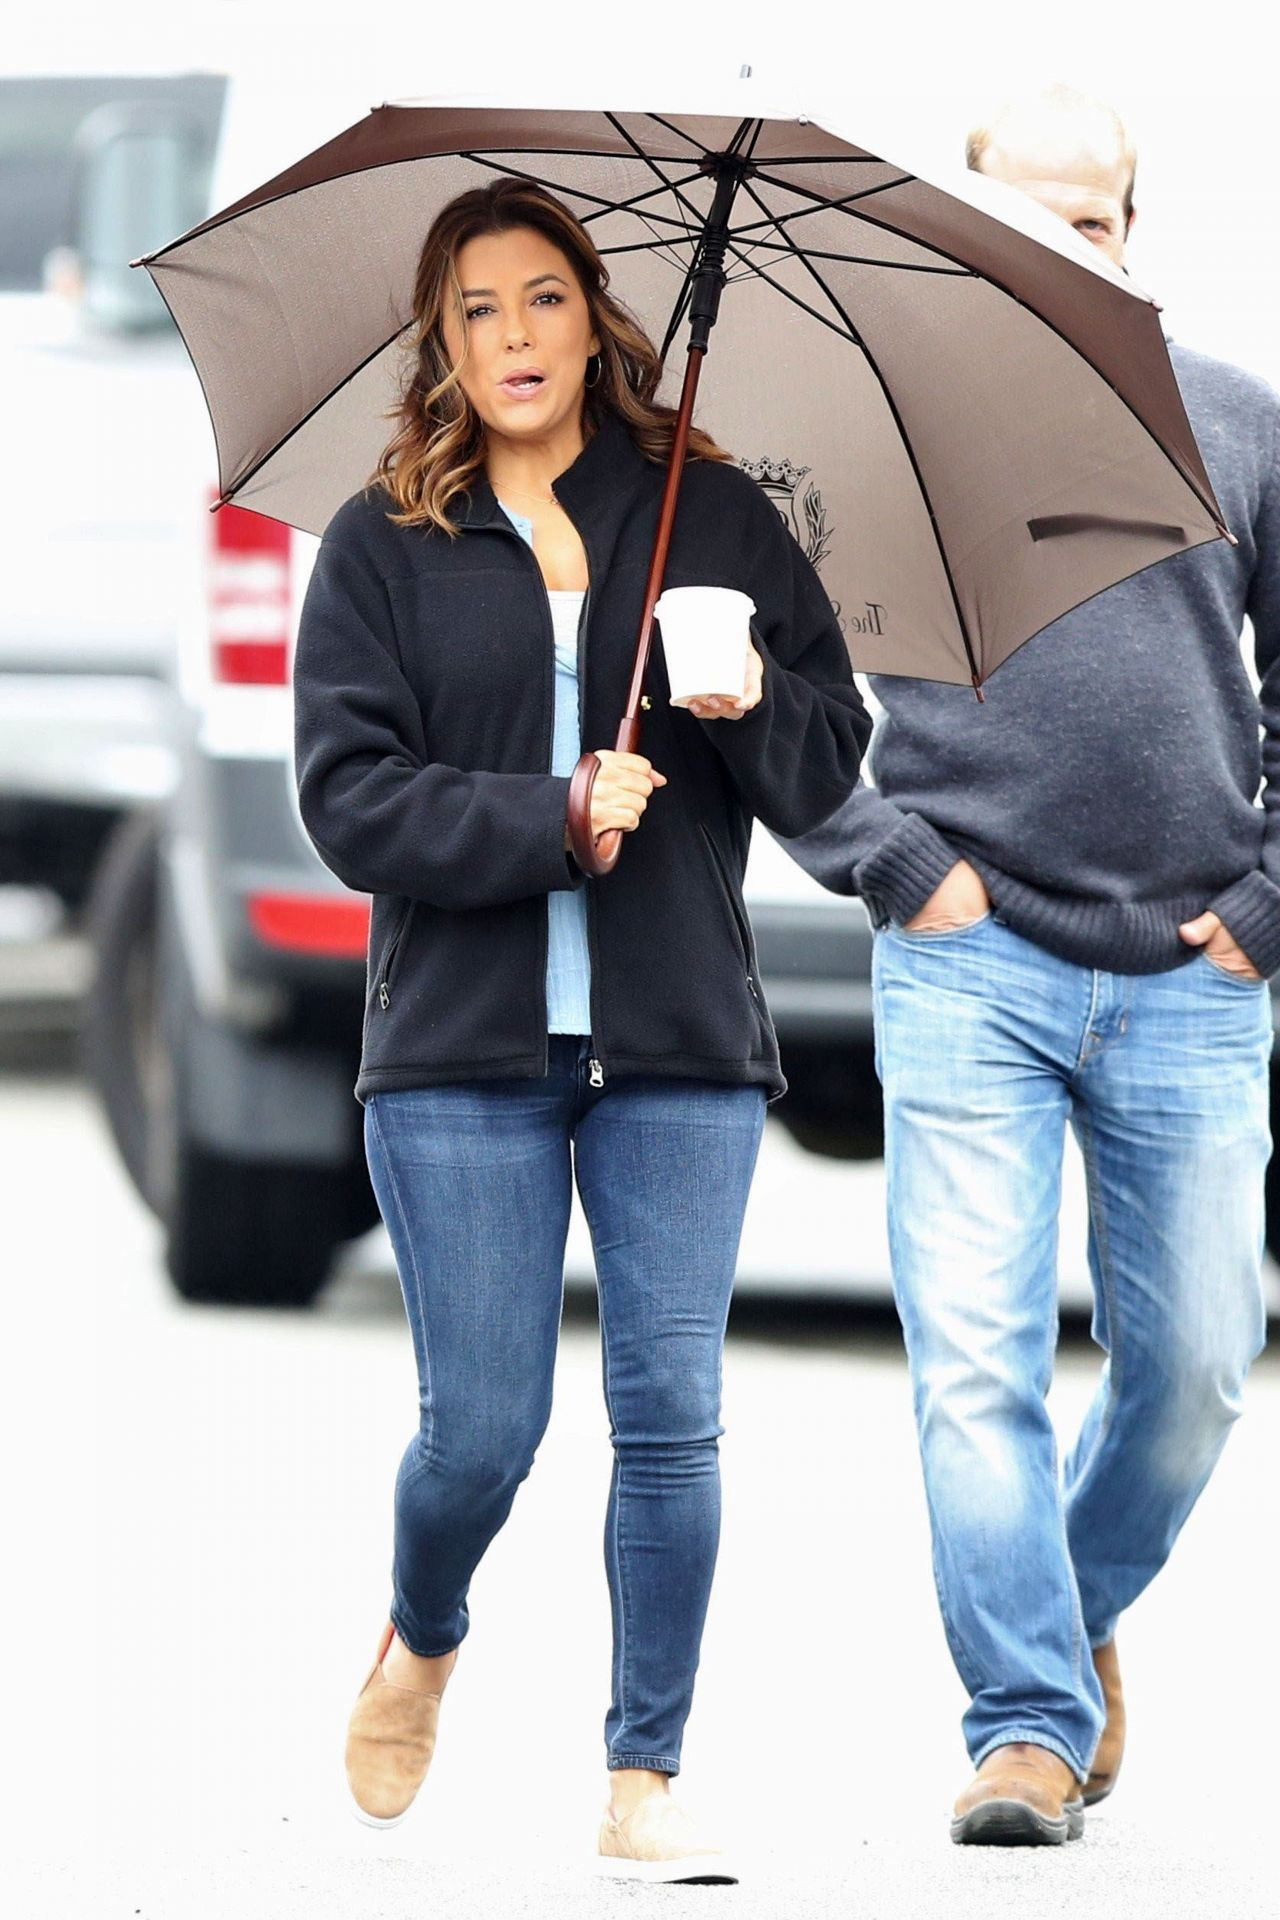 Eva longoria on the set of overboard in vancouver - 2019 year